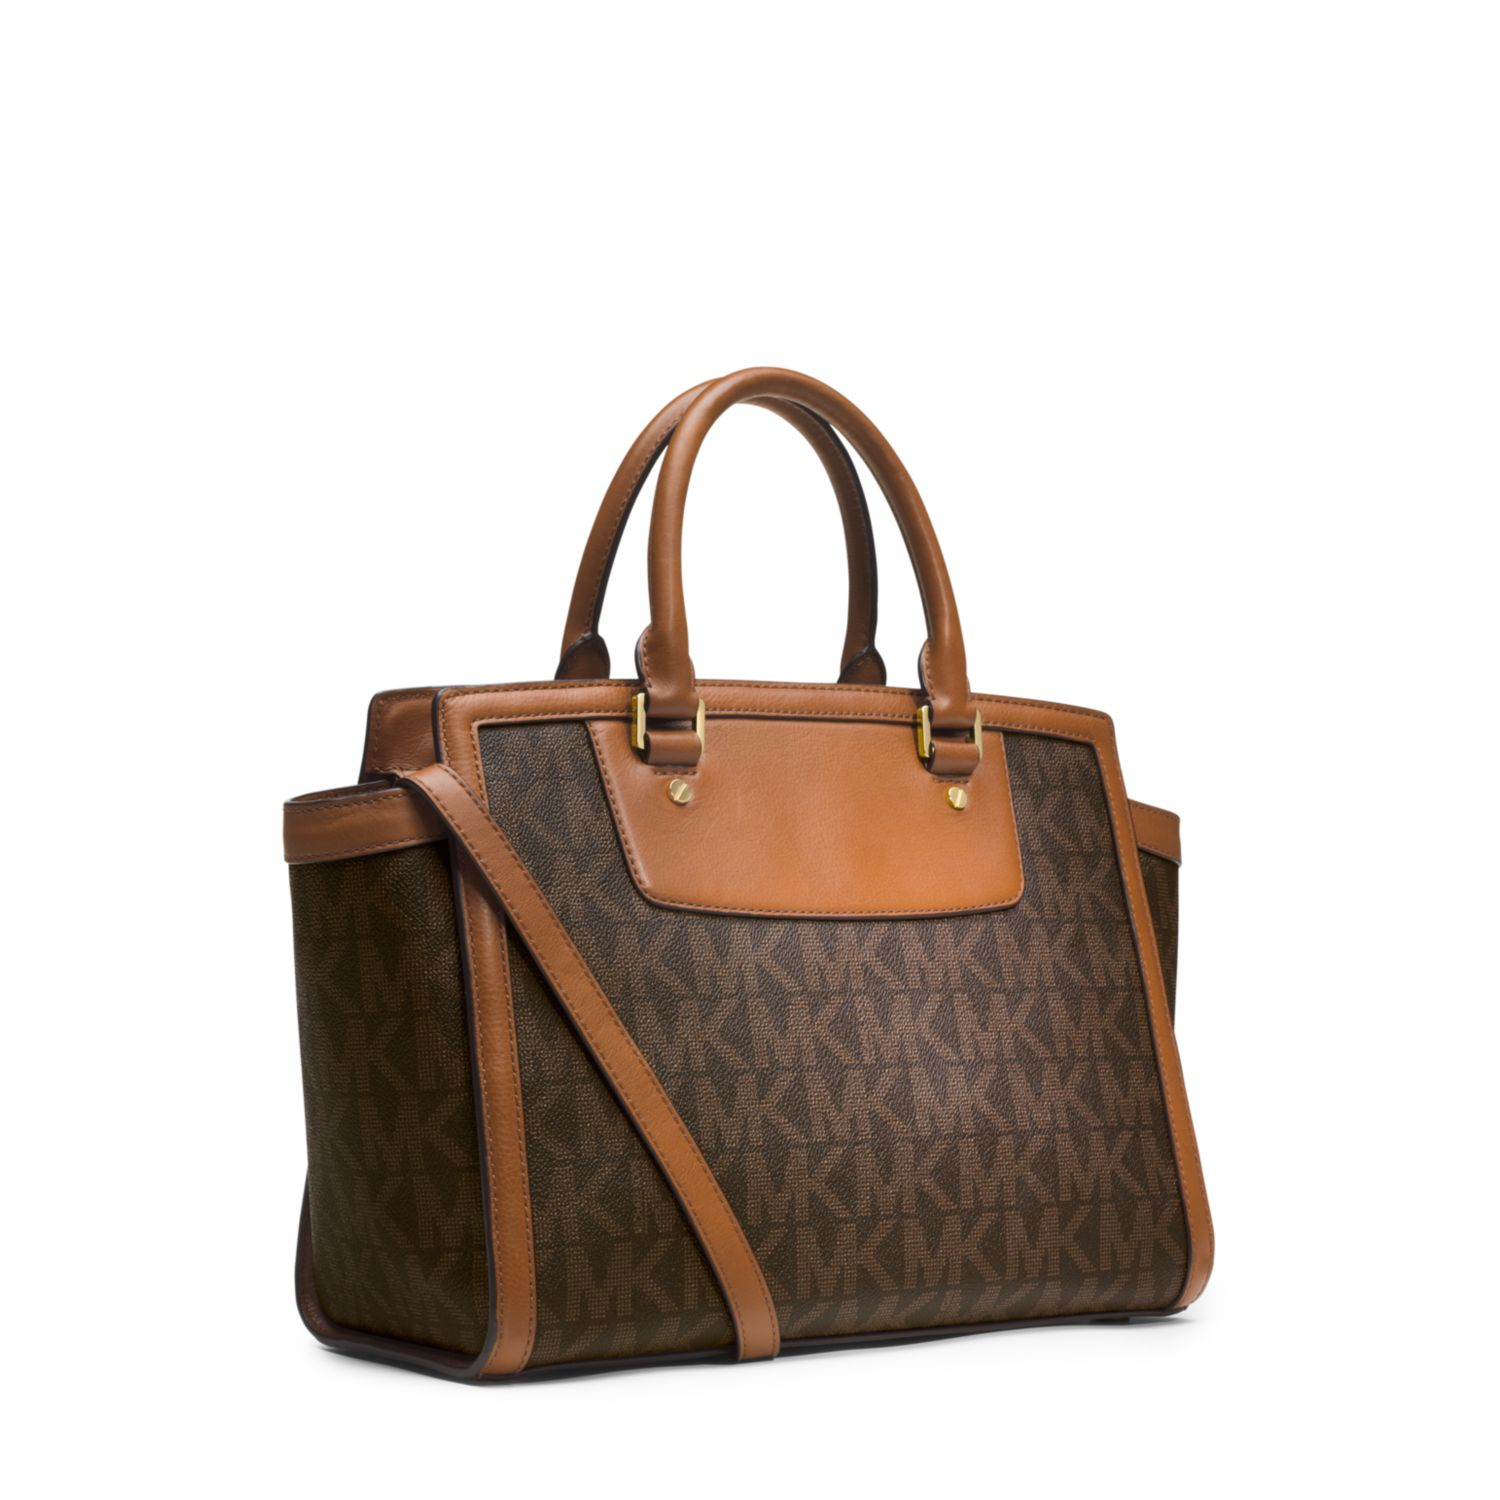 lyst michael kors selma logo large satchel in brown. Black Bedroom Furniture Sets. Home Design Ideas